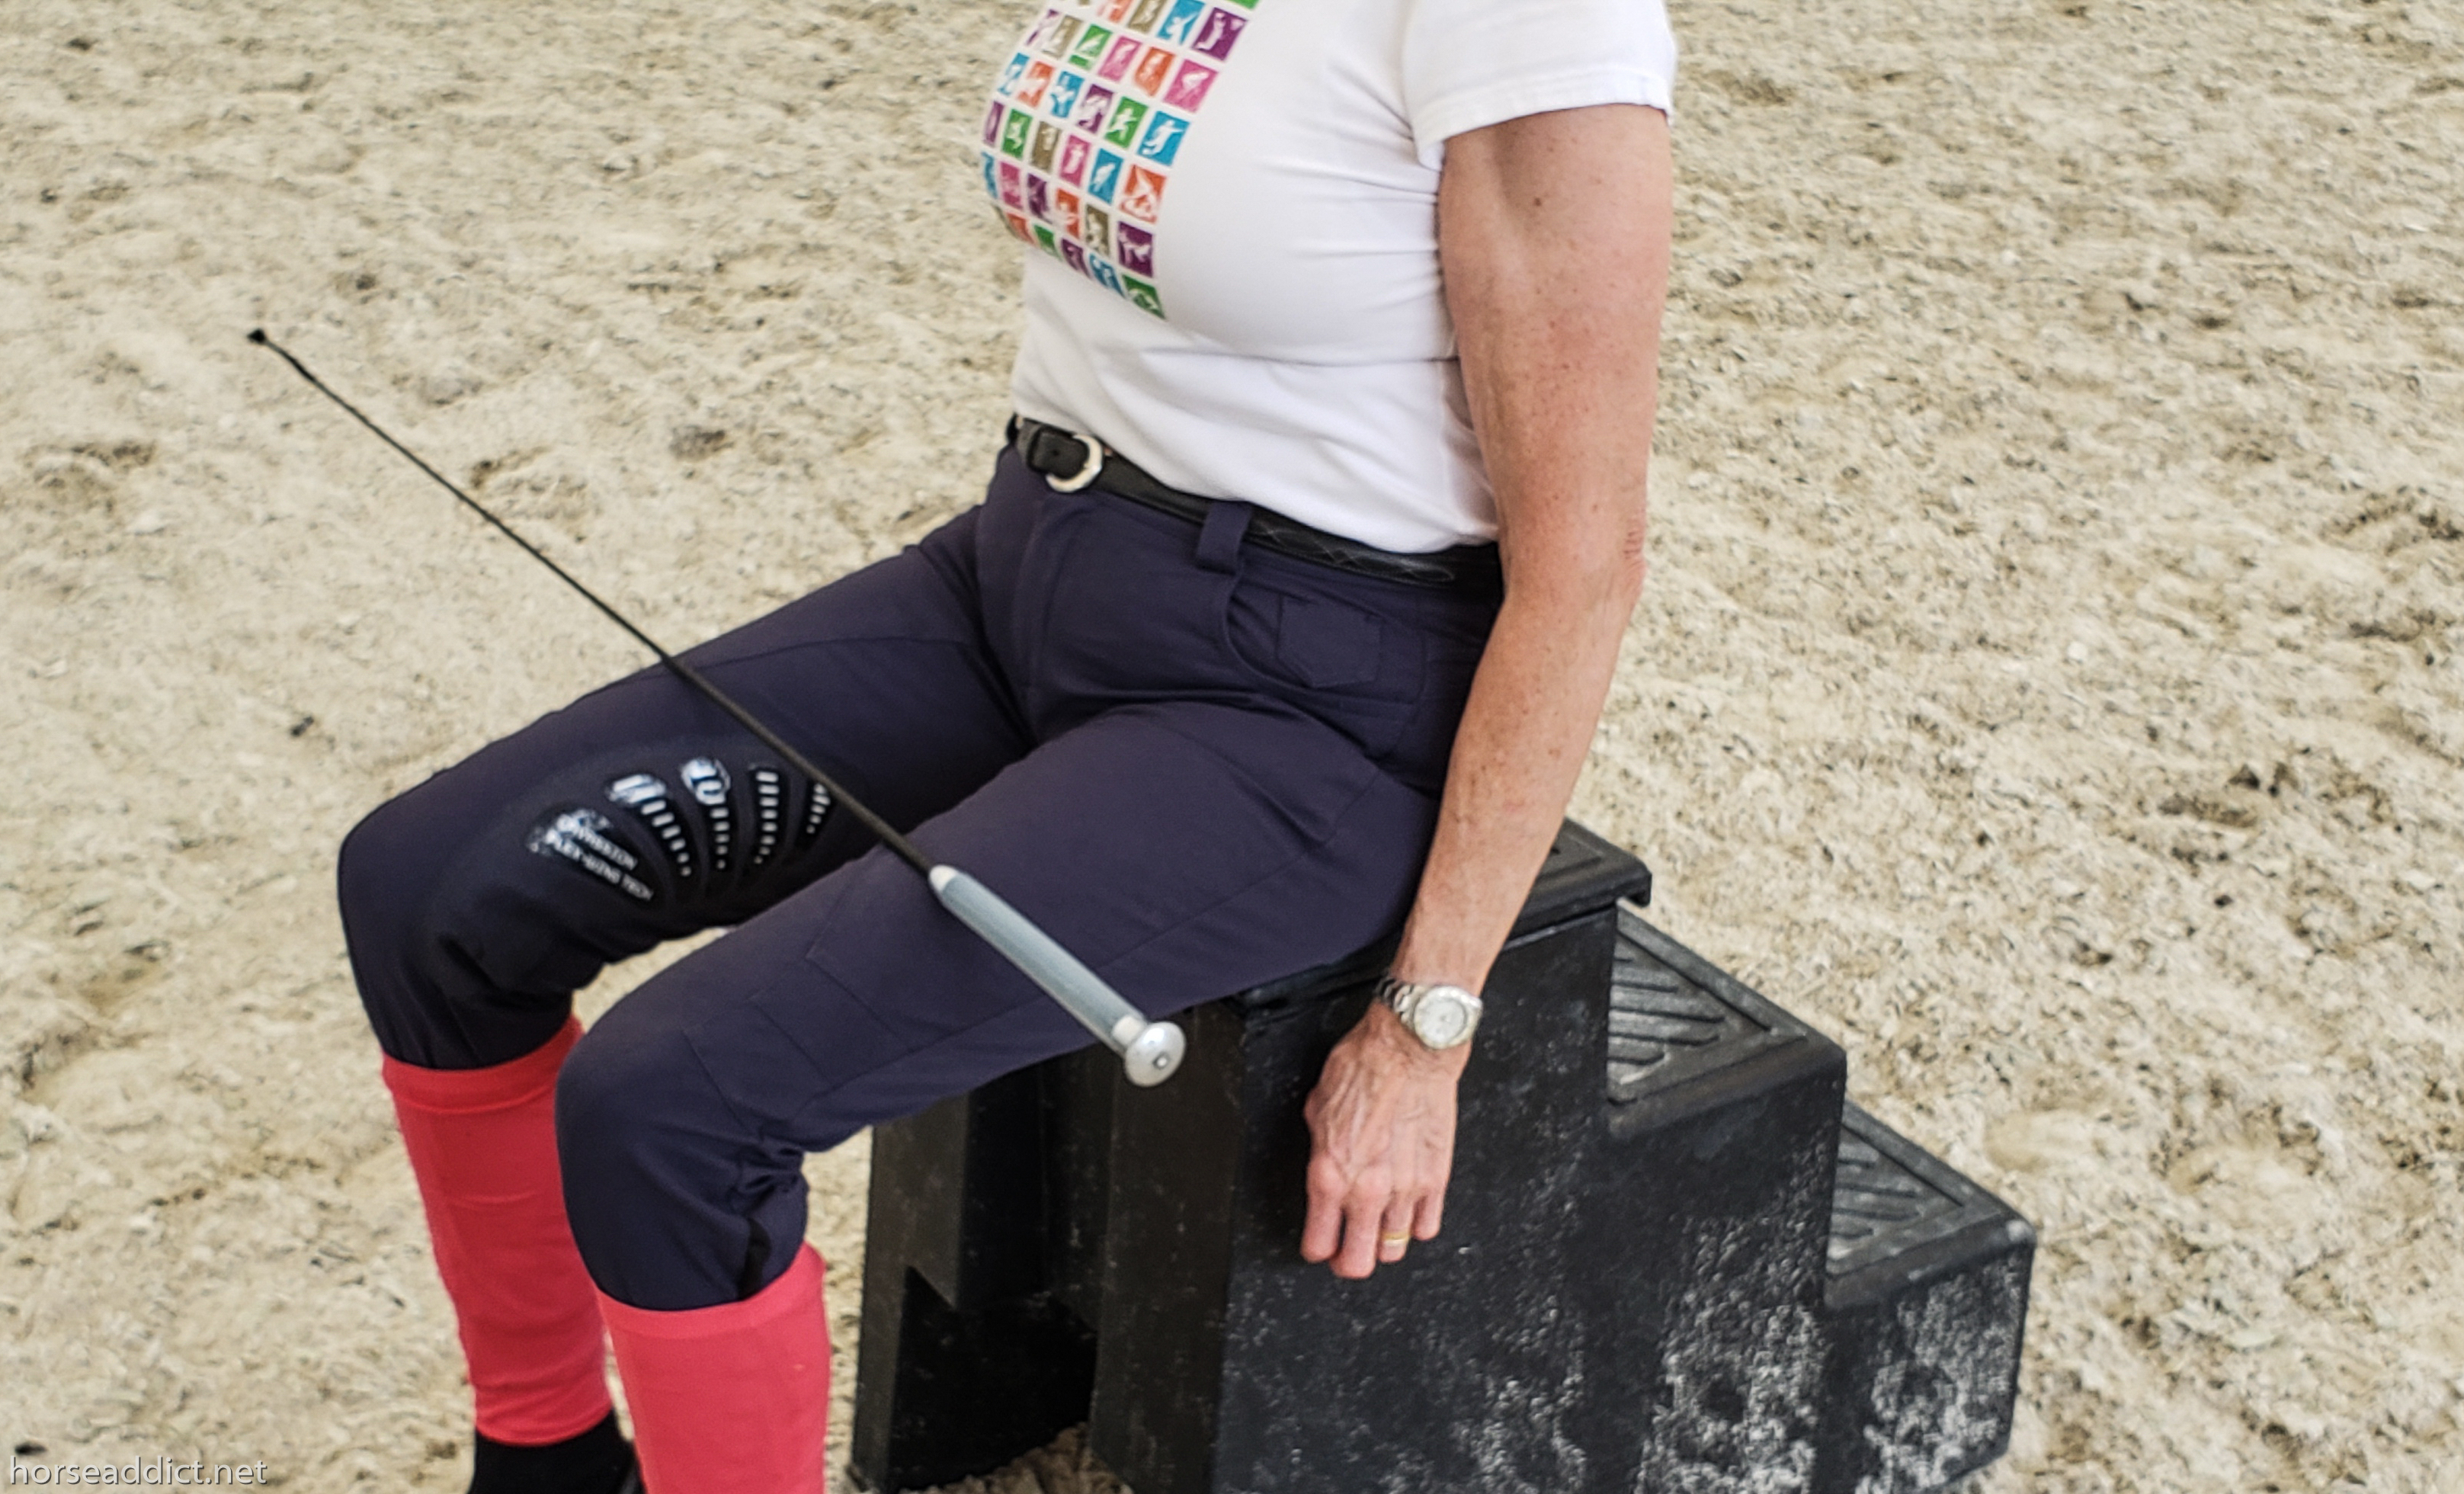 Riding the Mounting Block Update! 2 New Apps! – HorseAddict